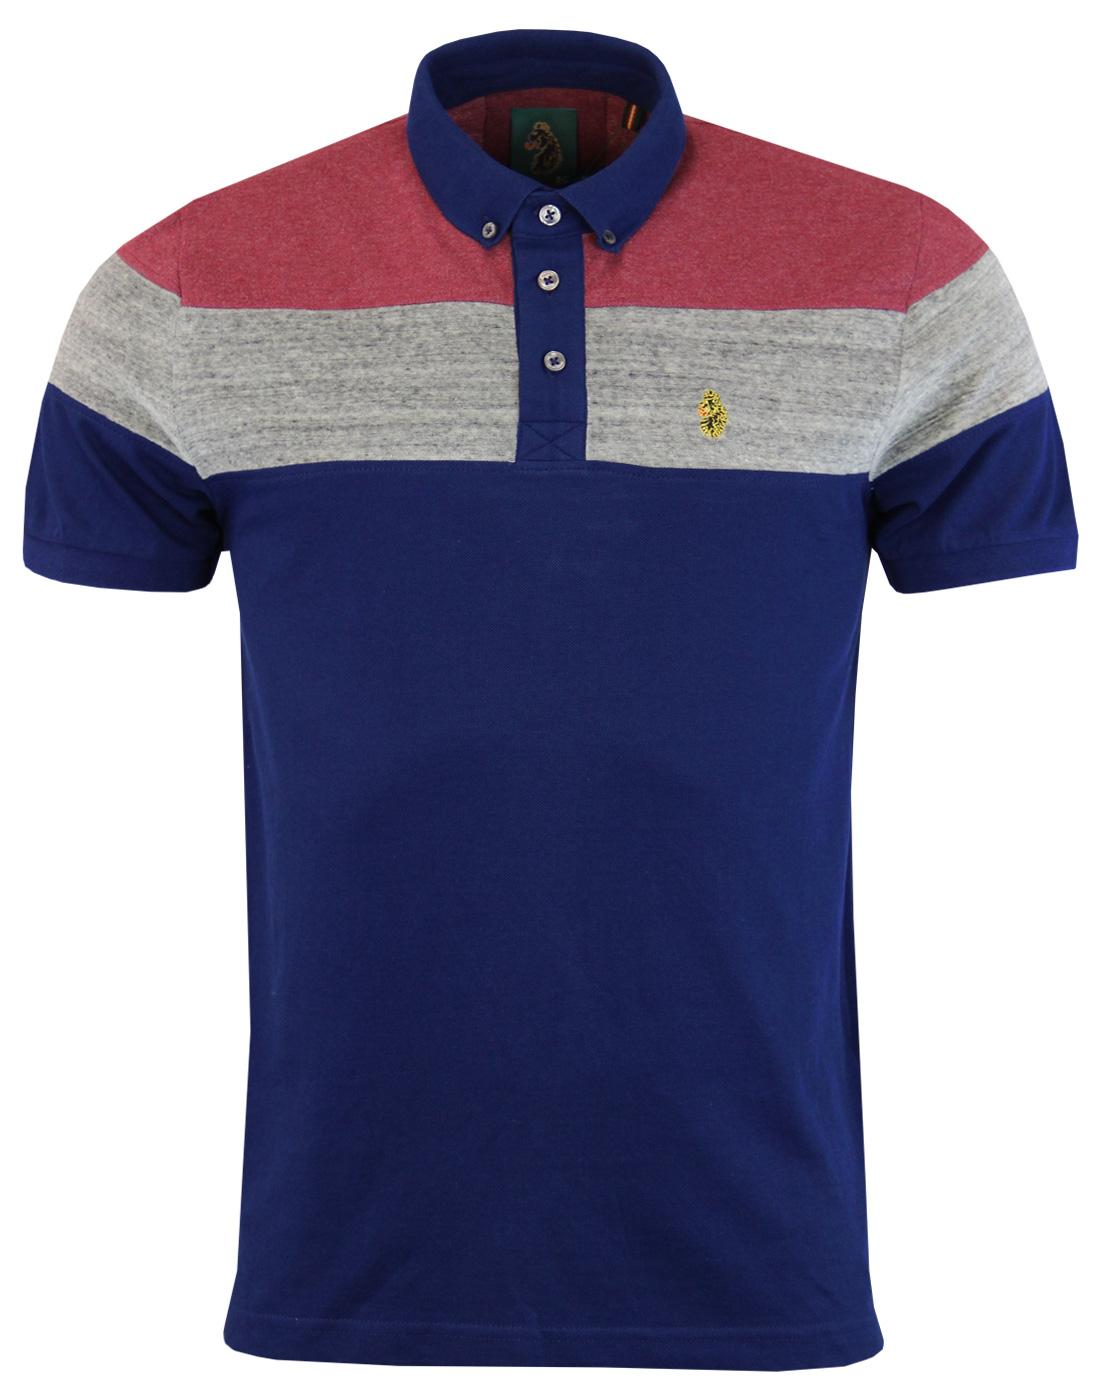 Mickey Velvet LUKE 1977 Retro Mod Panel Polo BLUE